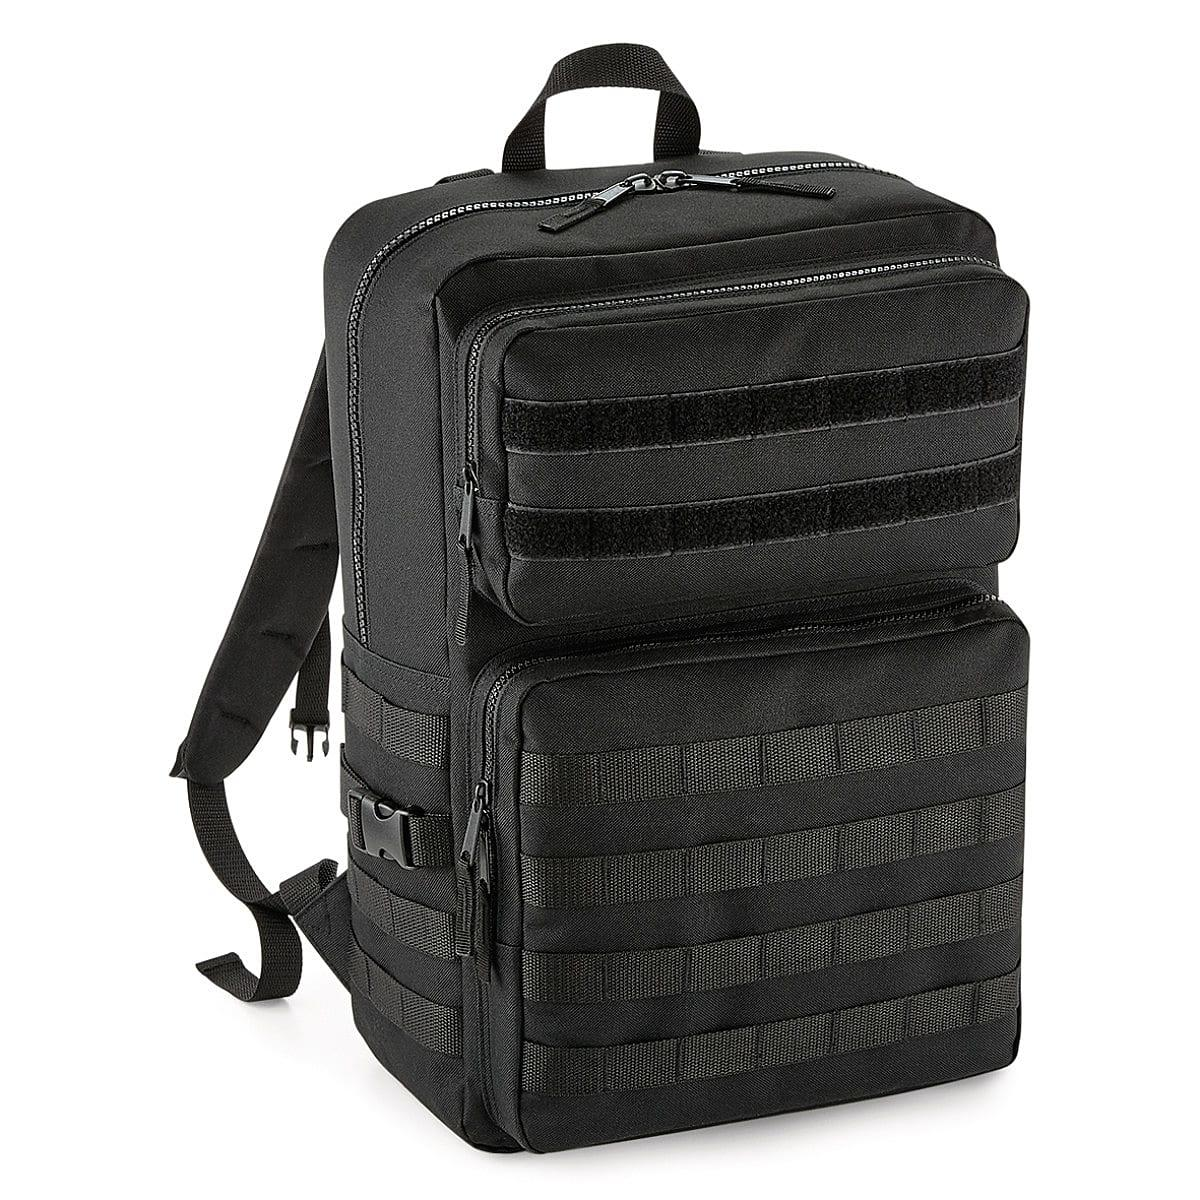 Bagbase Molle Tachtical Backpack in Black (Product Code: BG848)